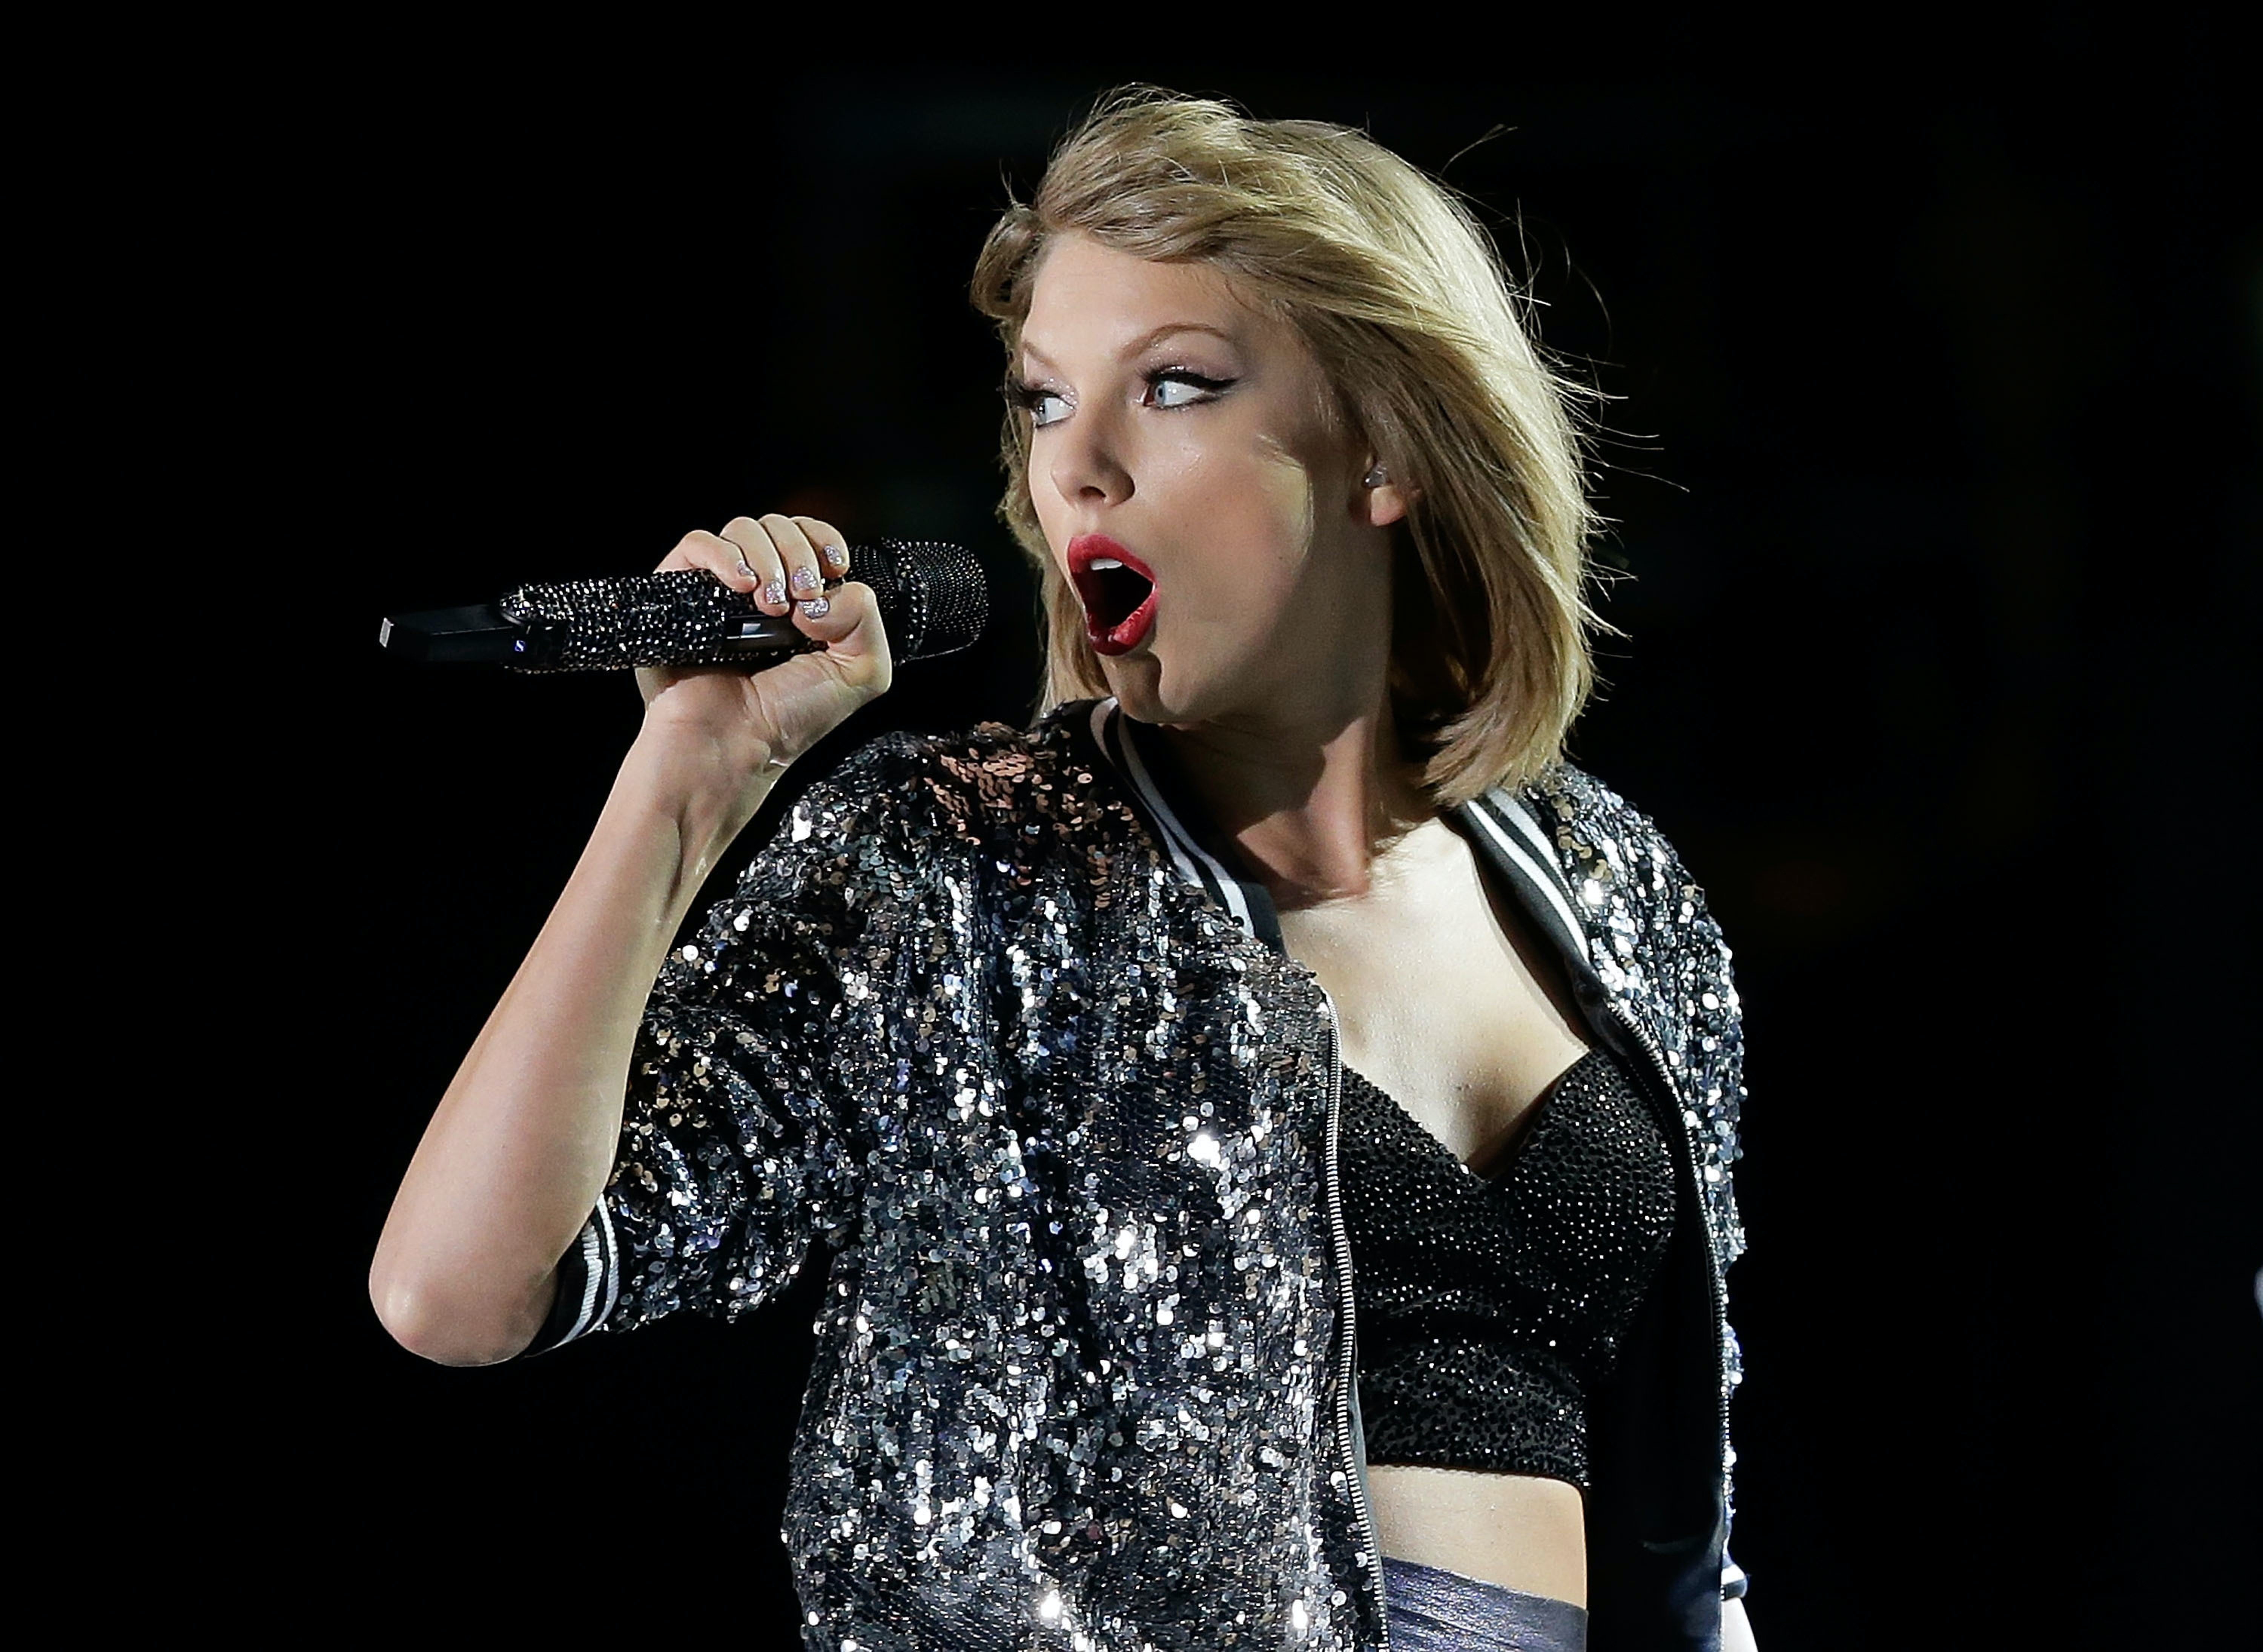 Apple Music created a concert video for Taylor Swift's '1989' tour in the past.